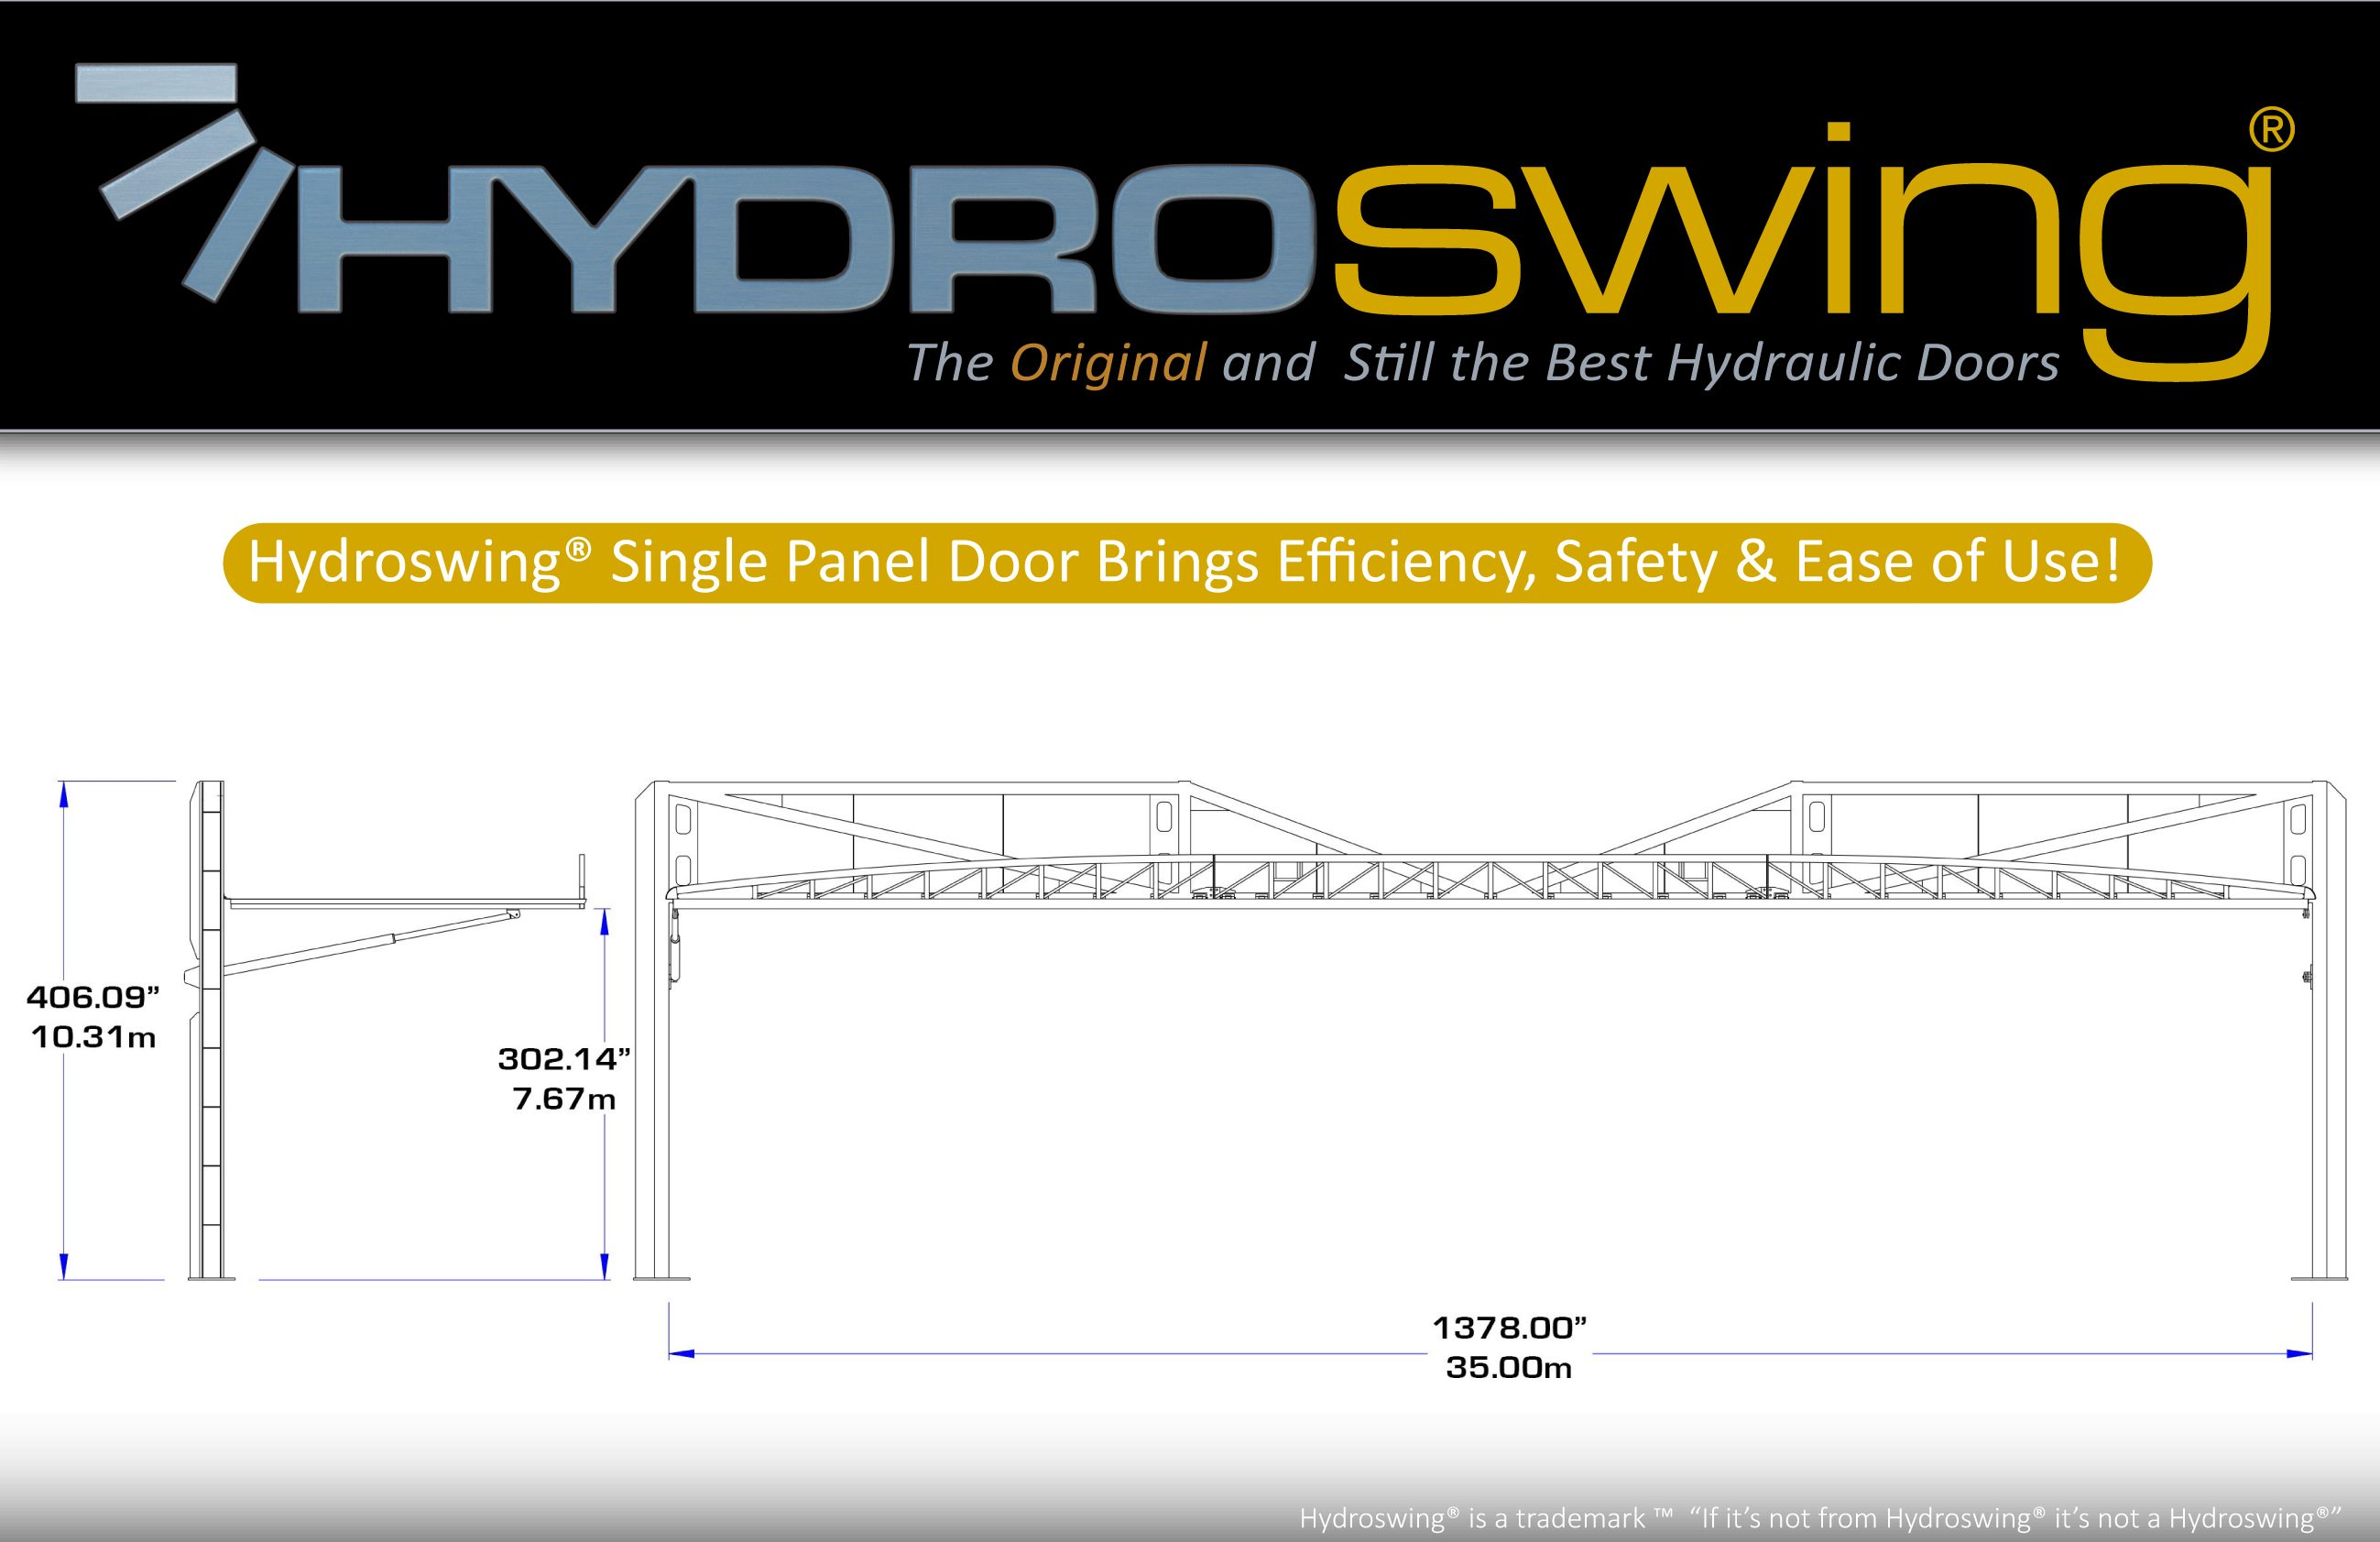 for sale large hydraulic doors by hydroswing available now